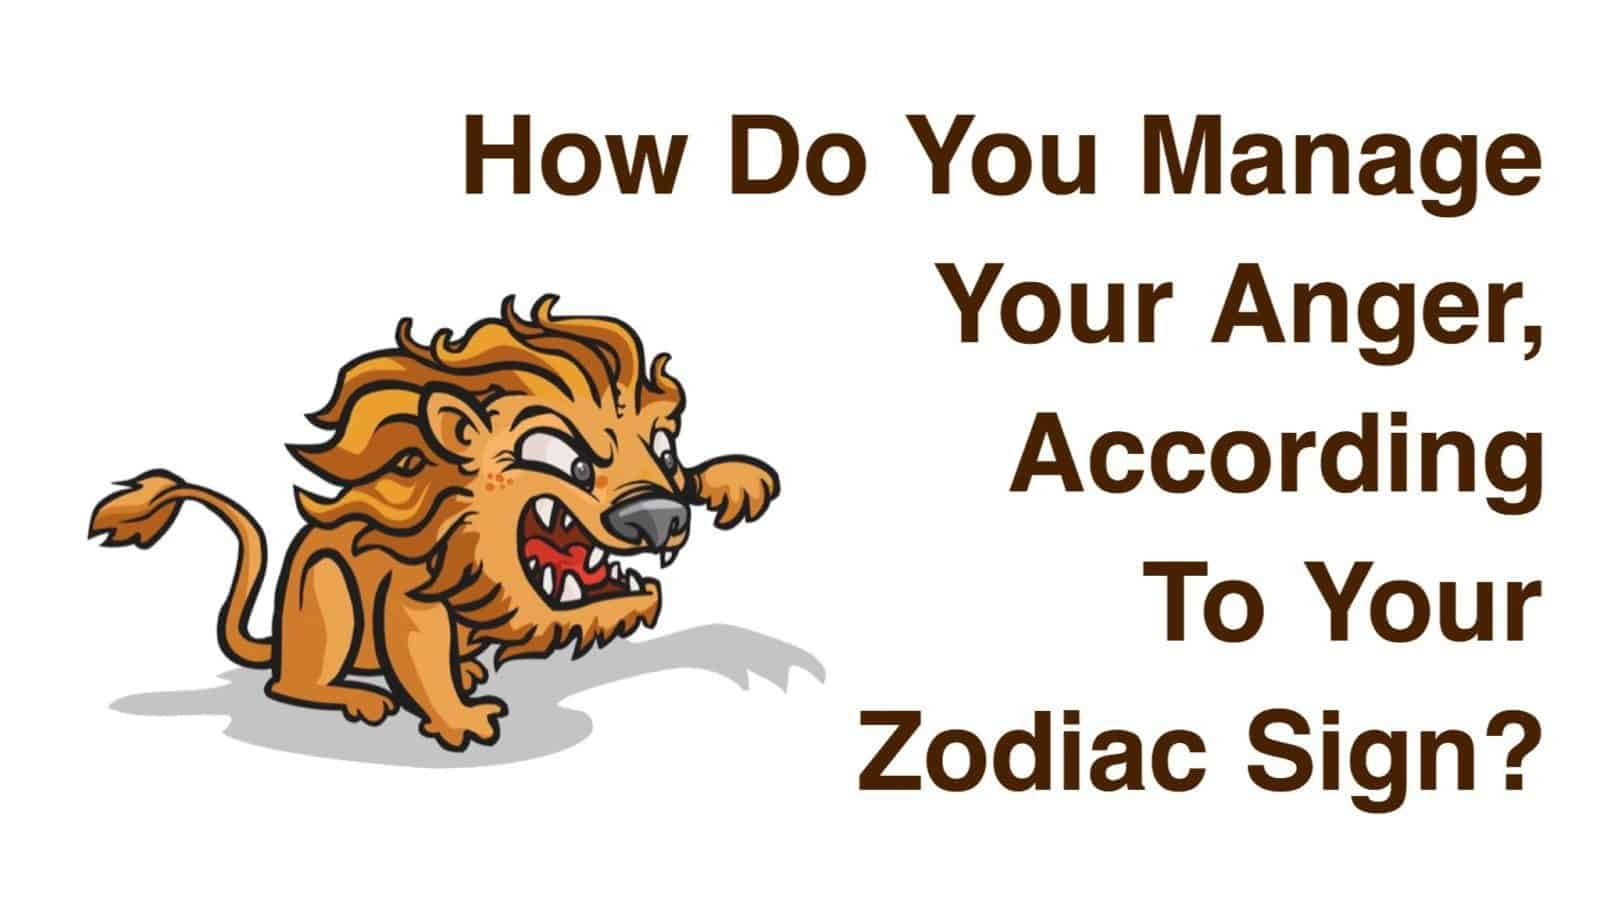 How Do You Manage Your Anger, According To Your Zodiac Sign?